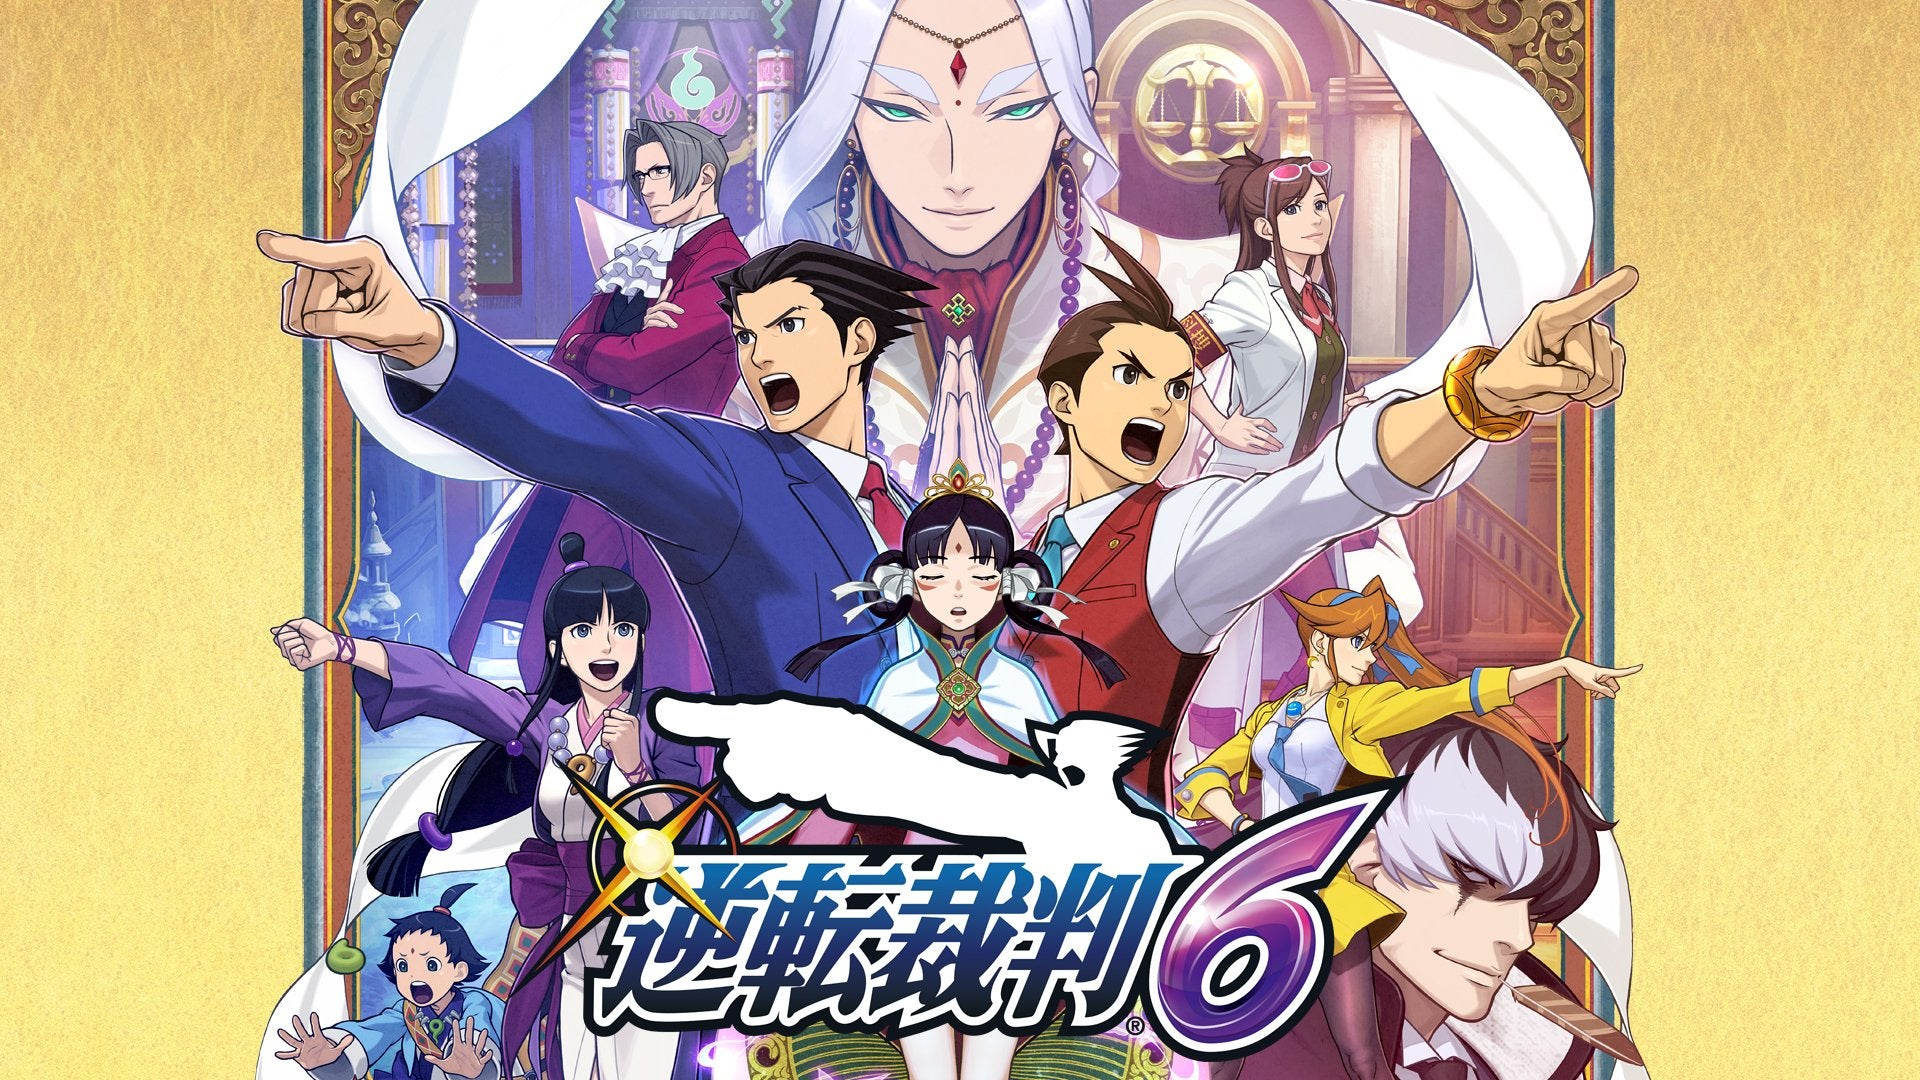 phoenix wright ace attorney wallpaper